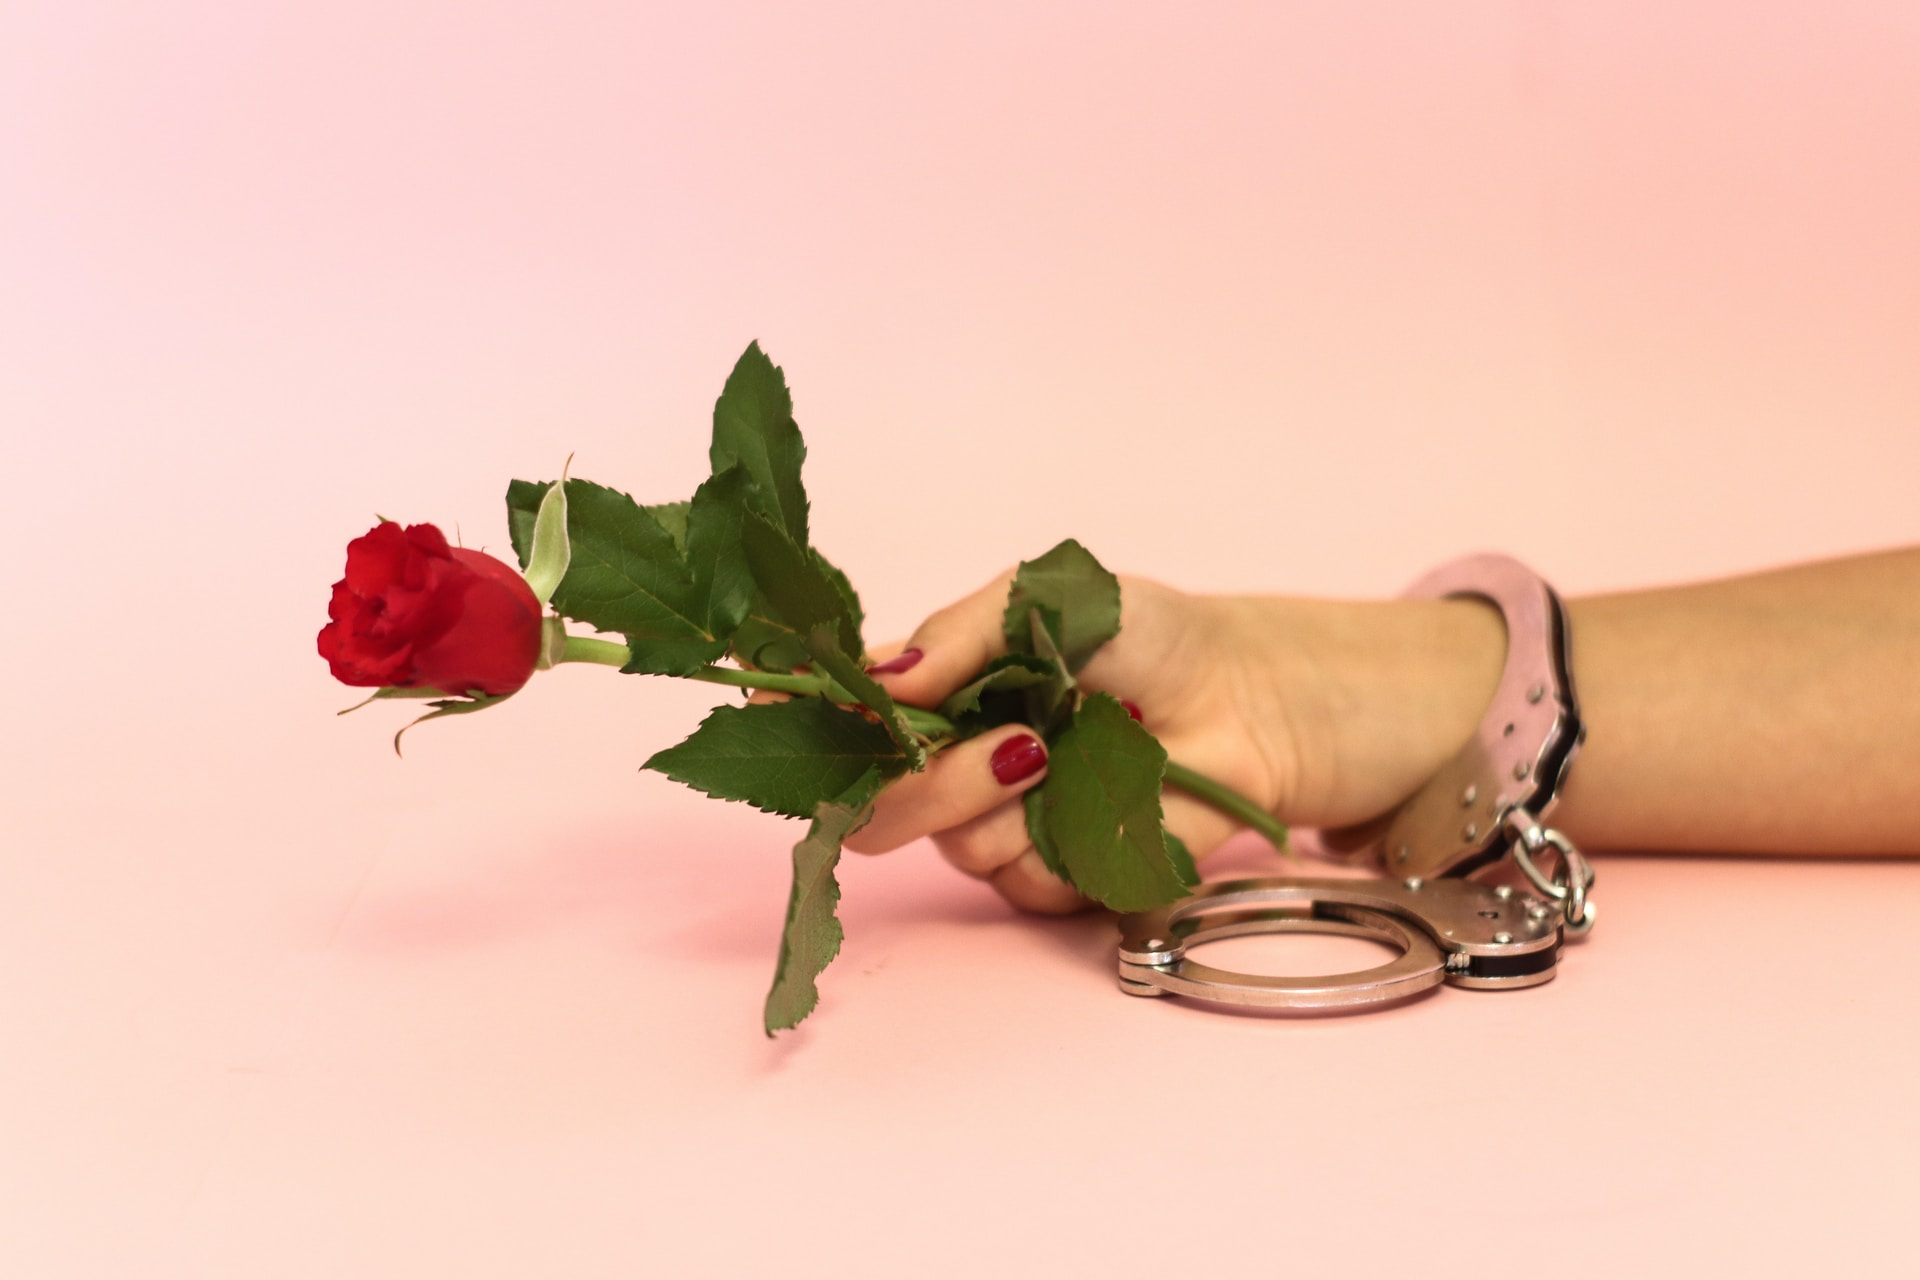 person holding red rose flowers